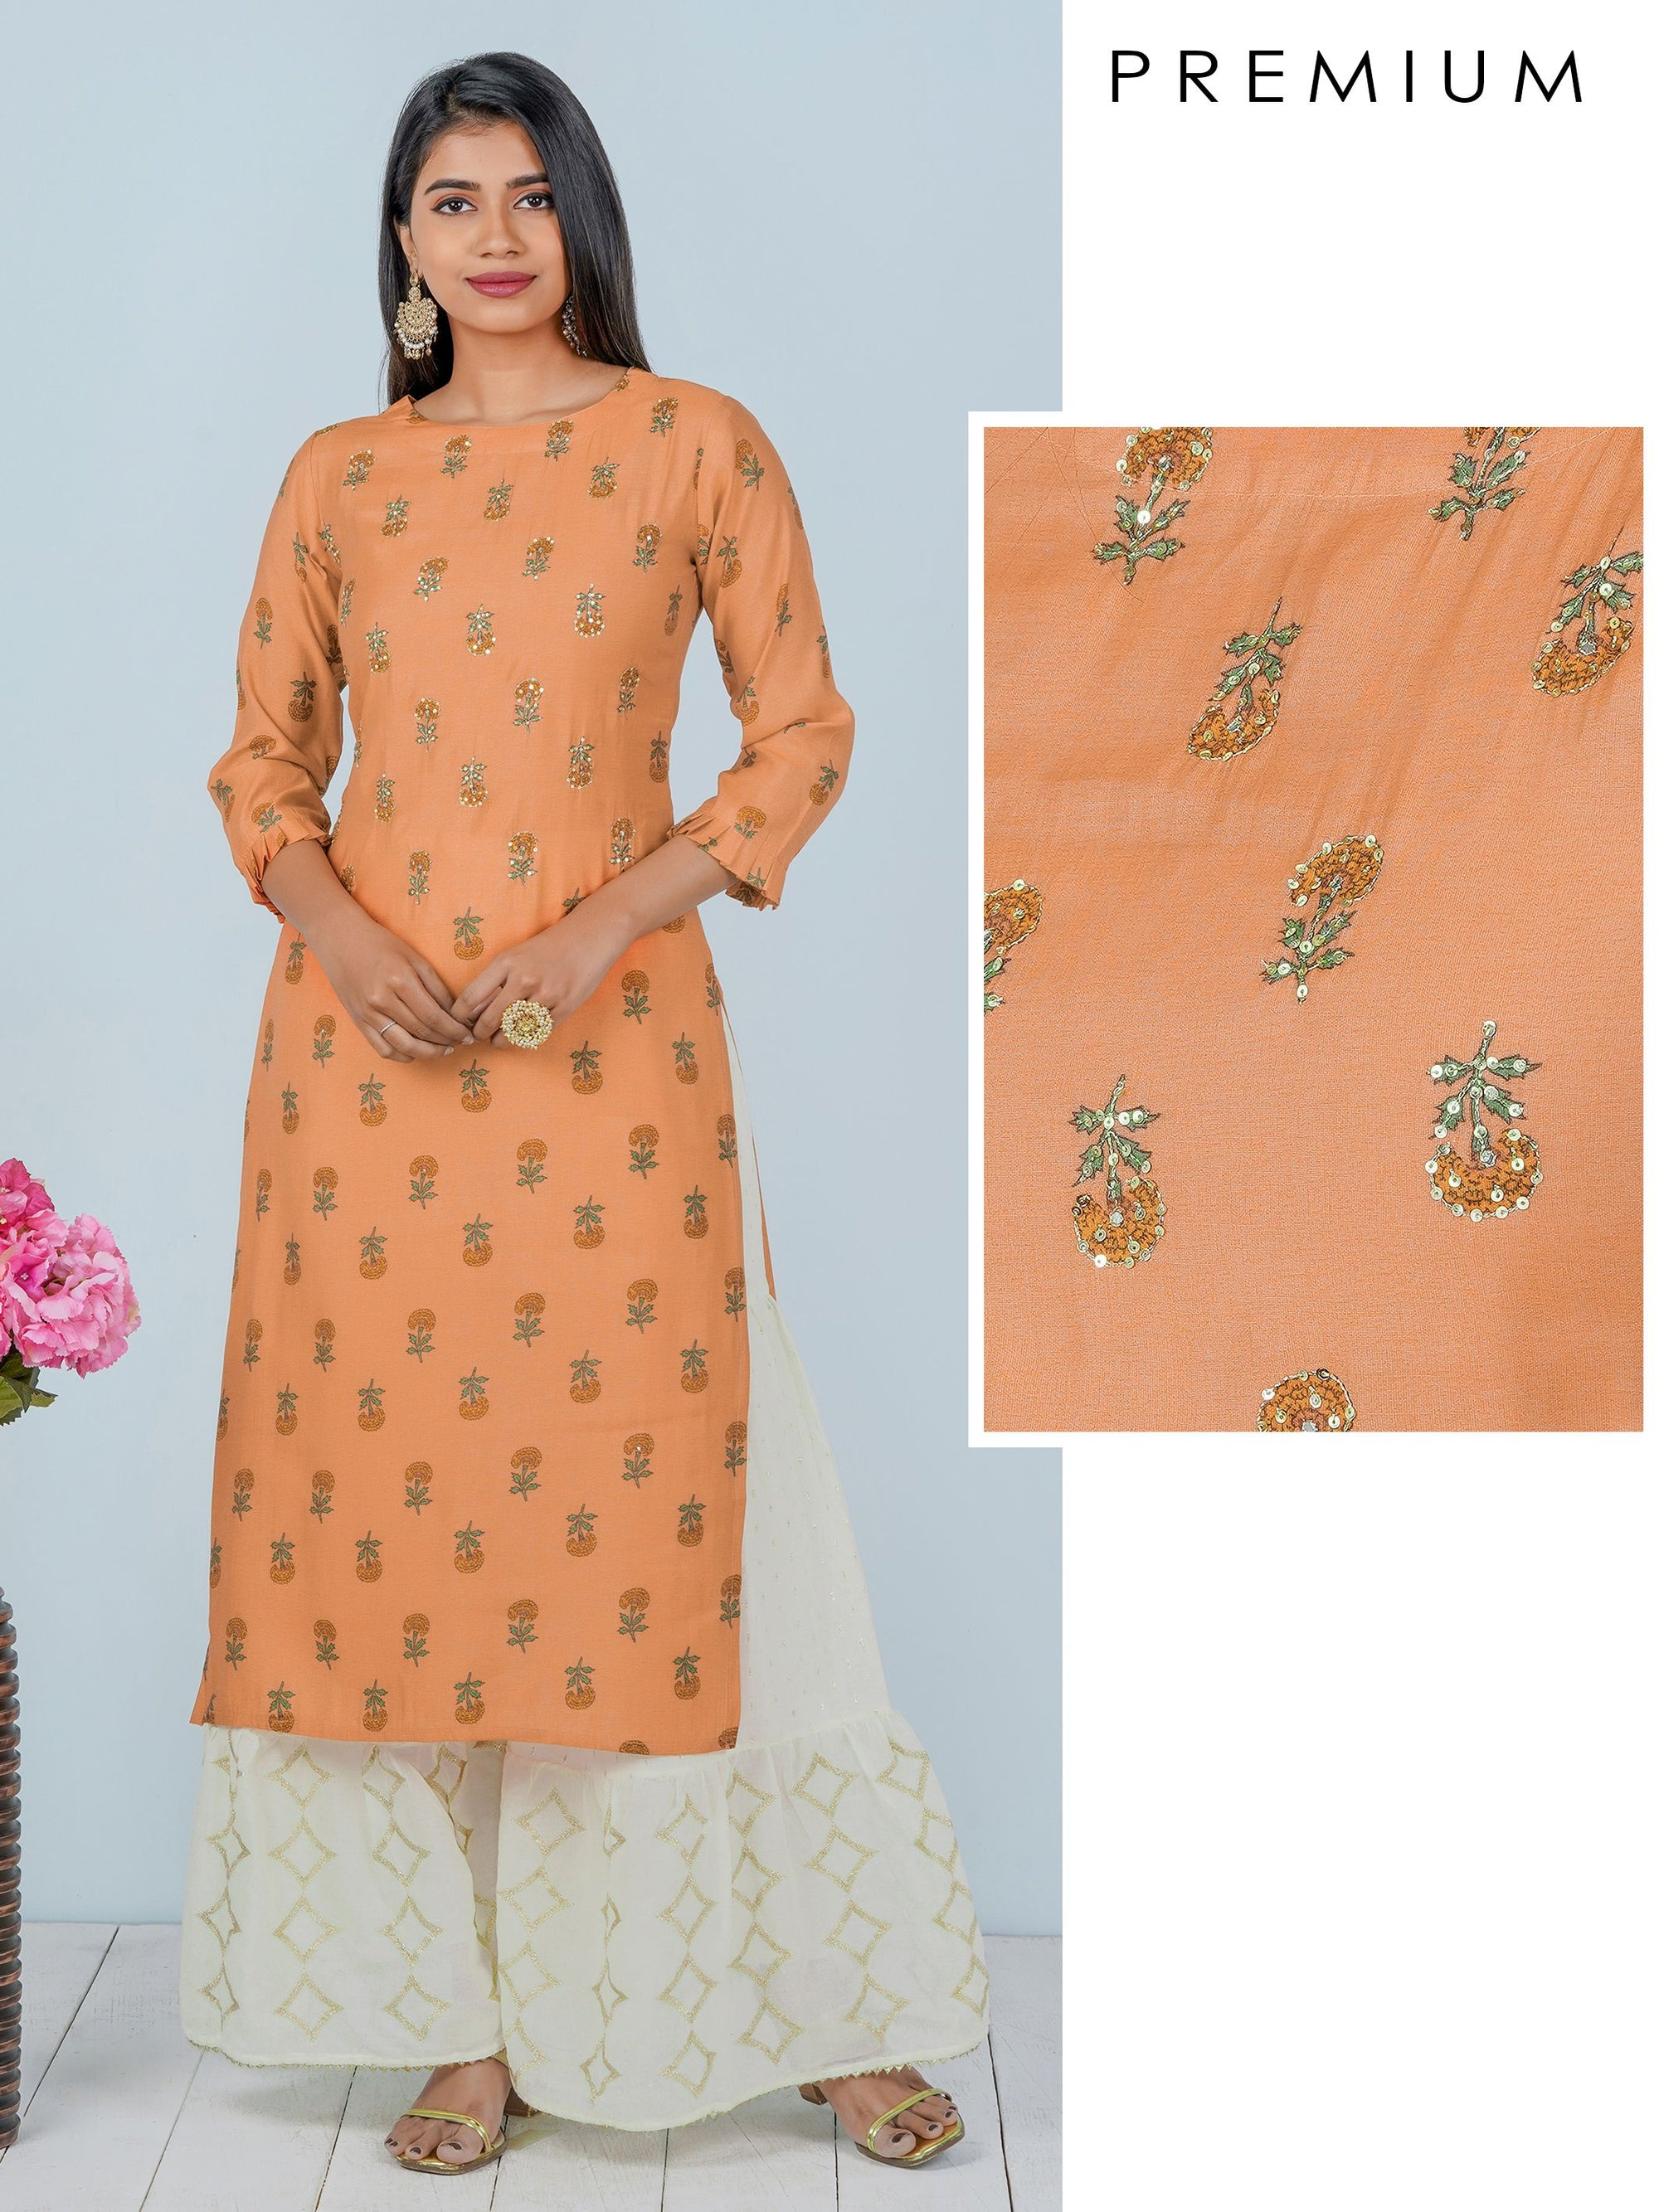 Sequins Enhanced Floral Printed Kurti